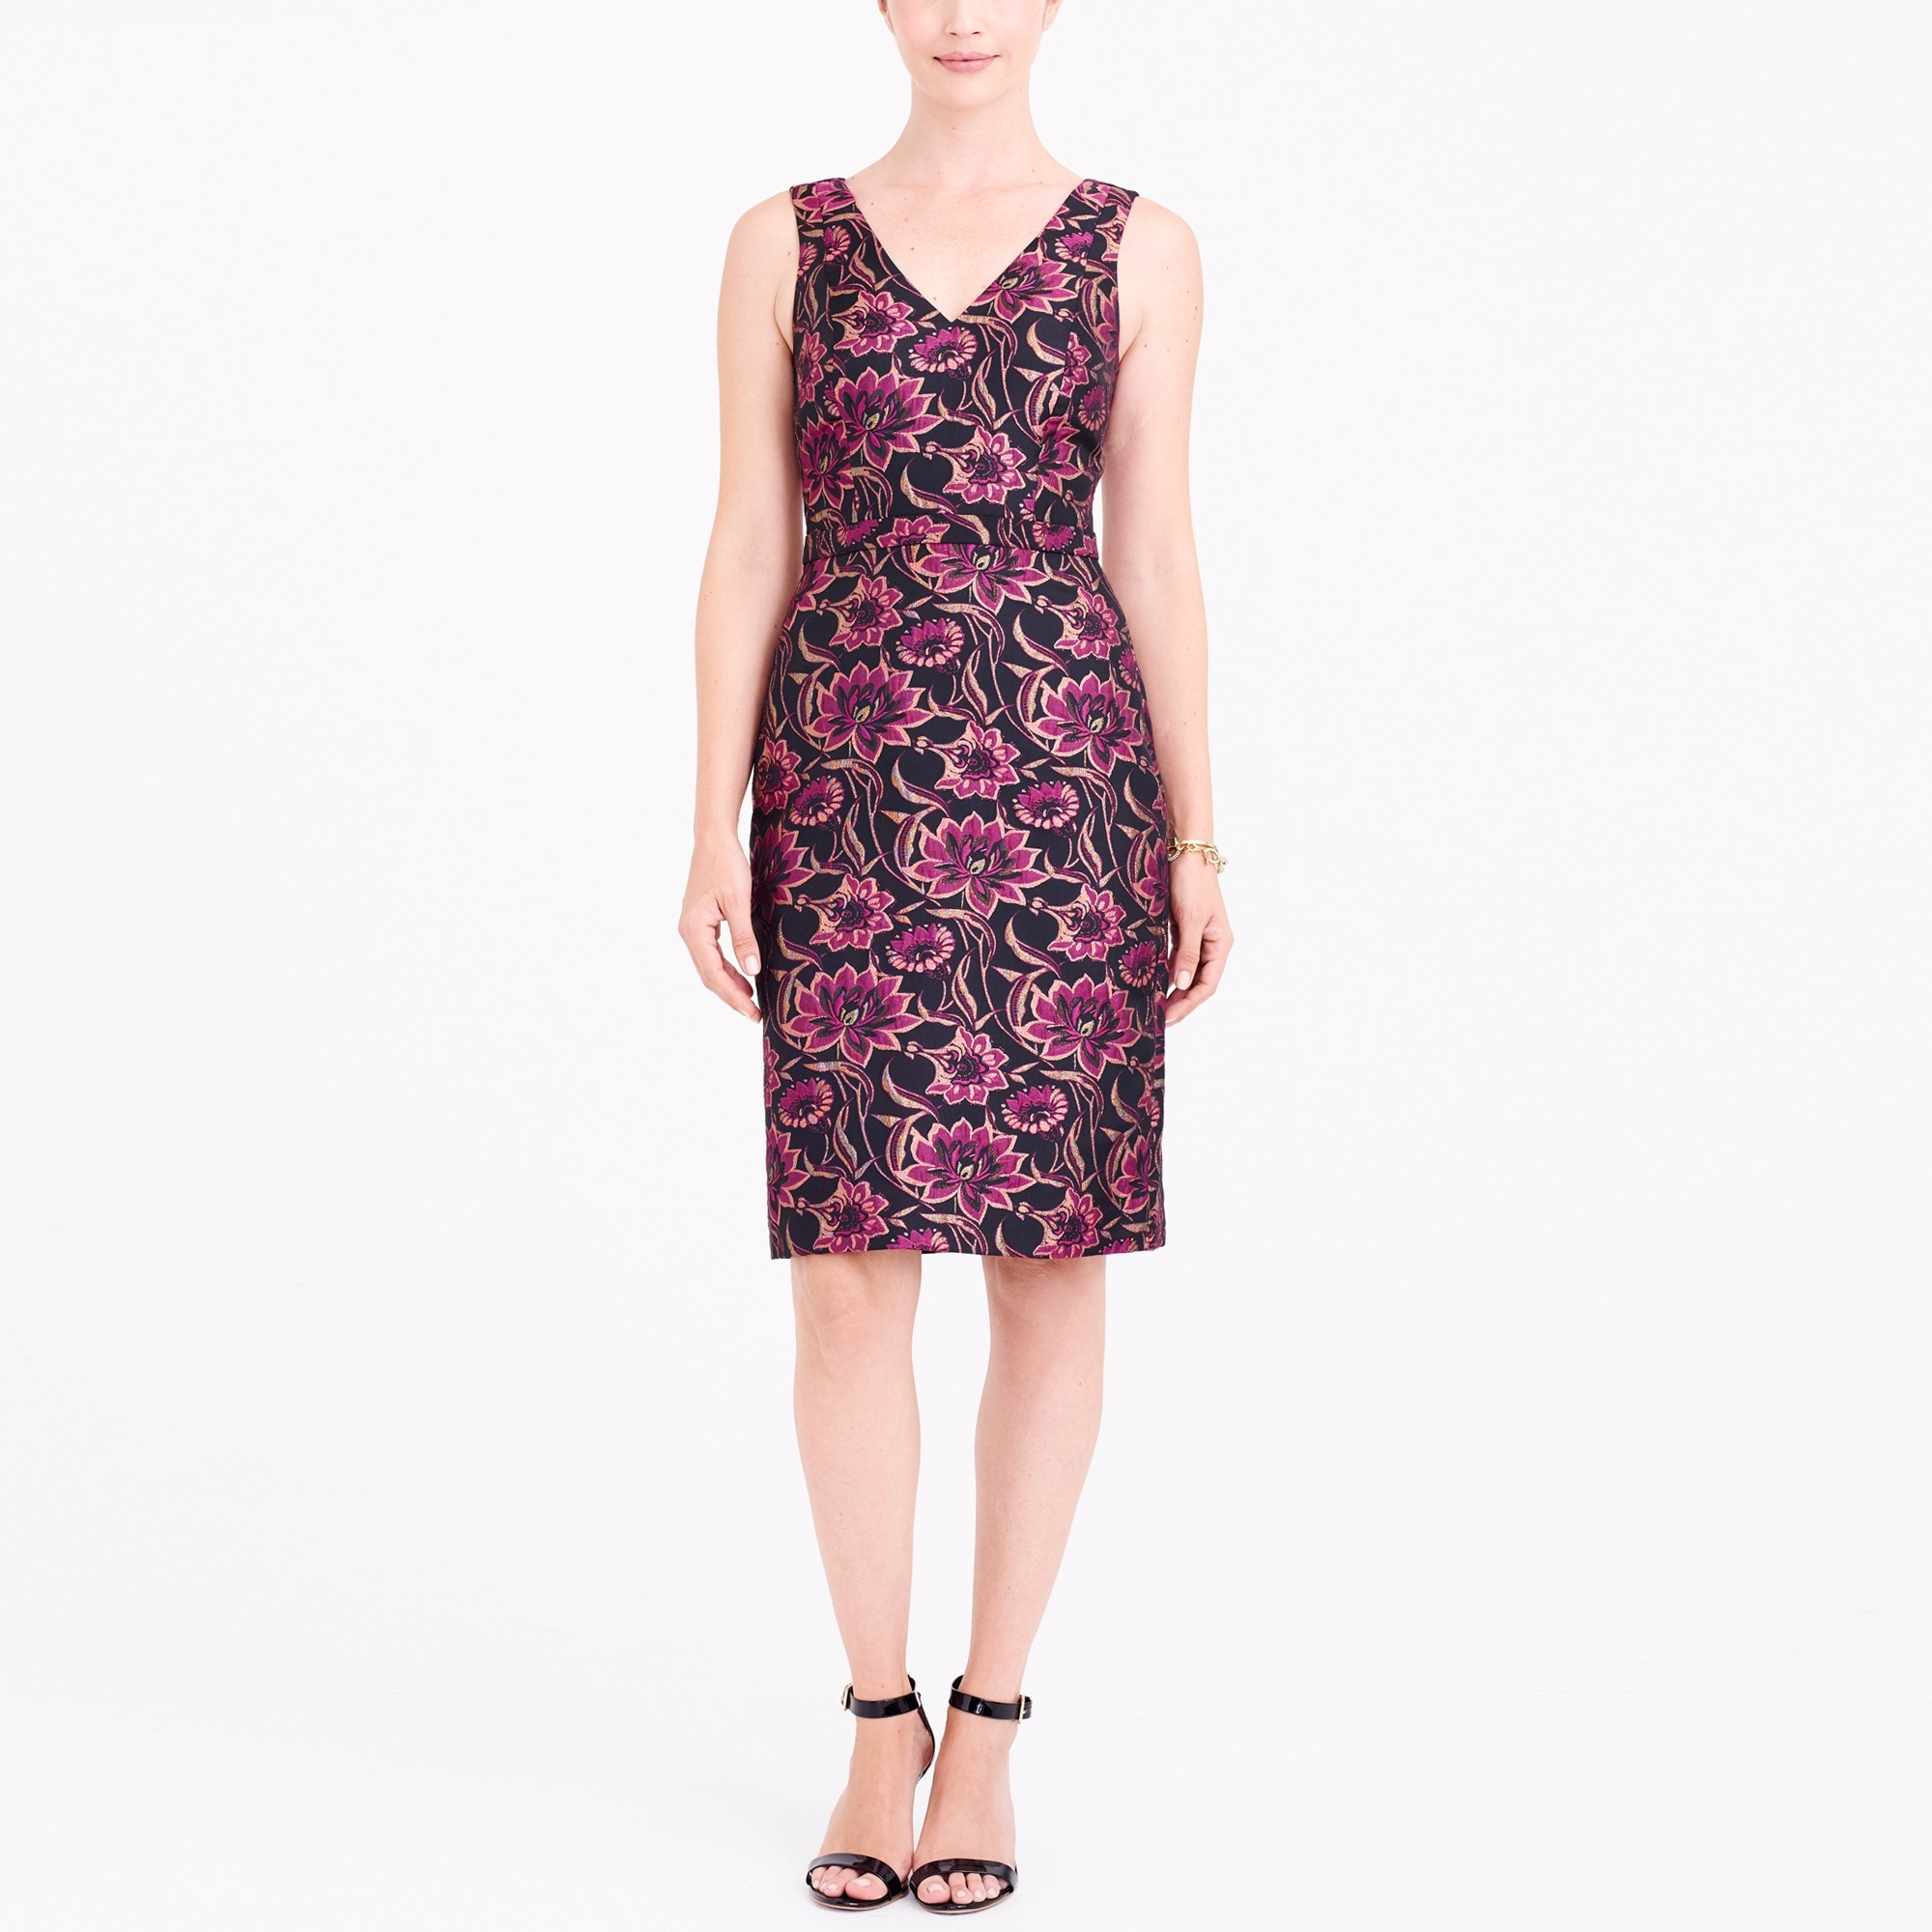 jacquard v-neck dress : factorywomen party dresses